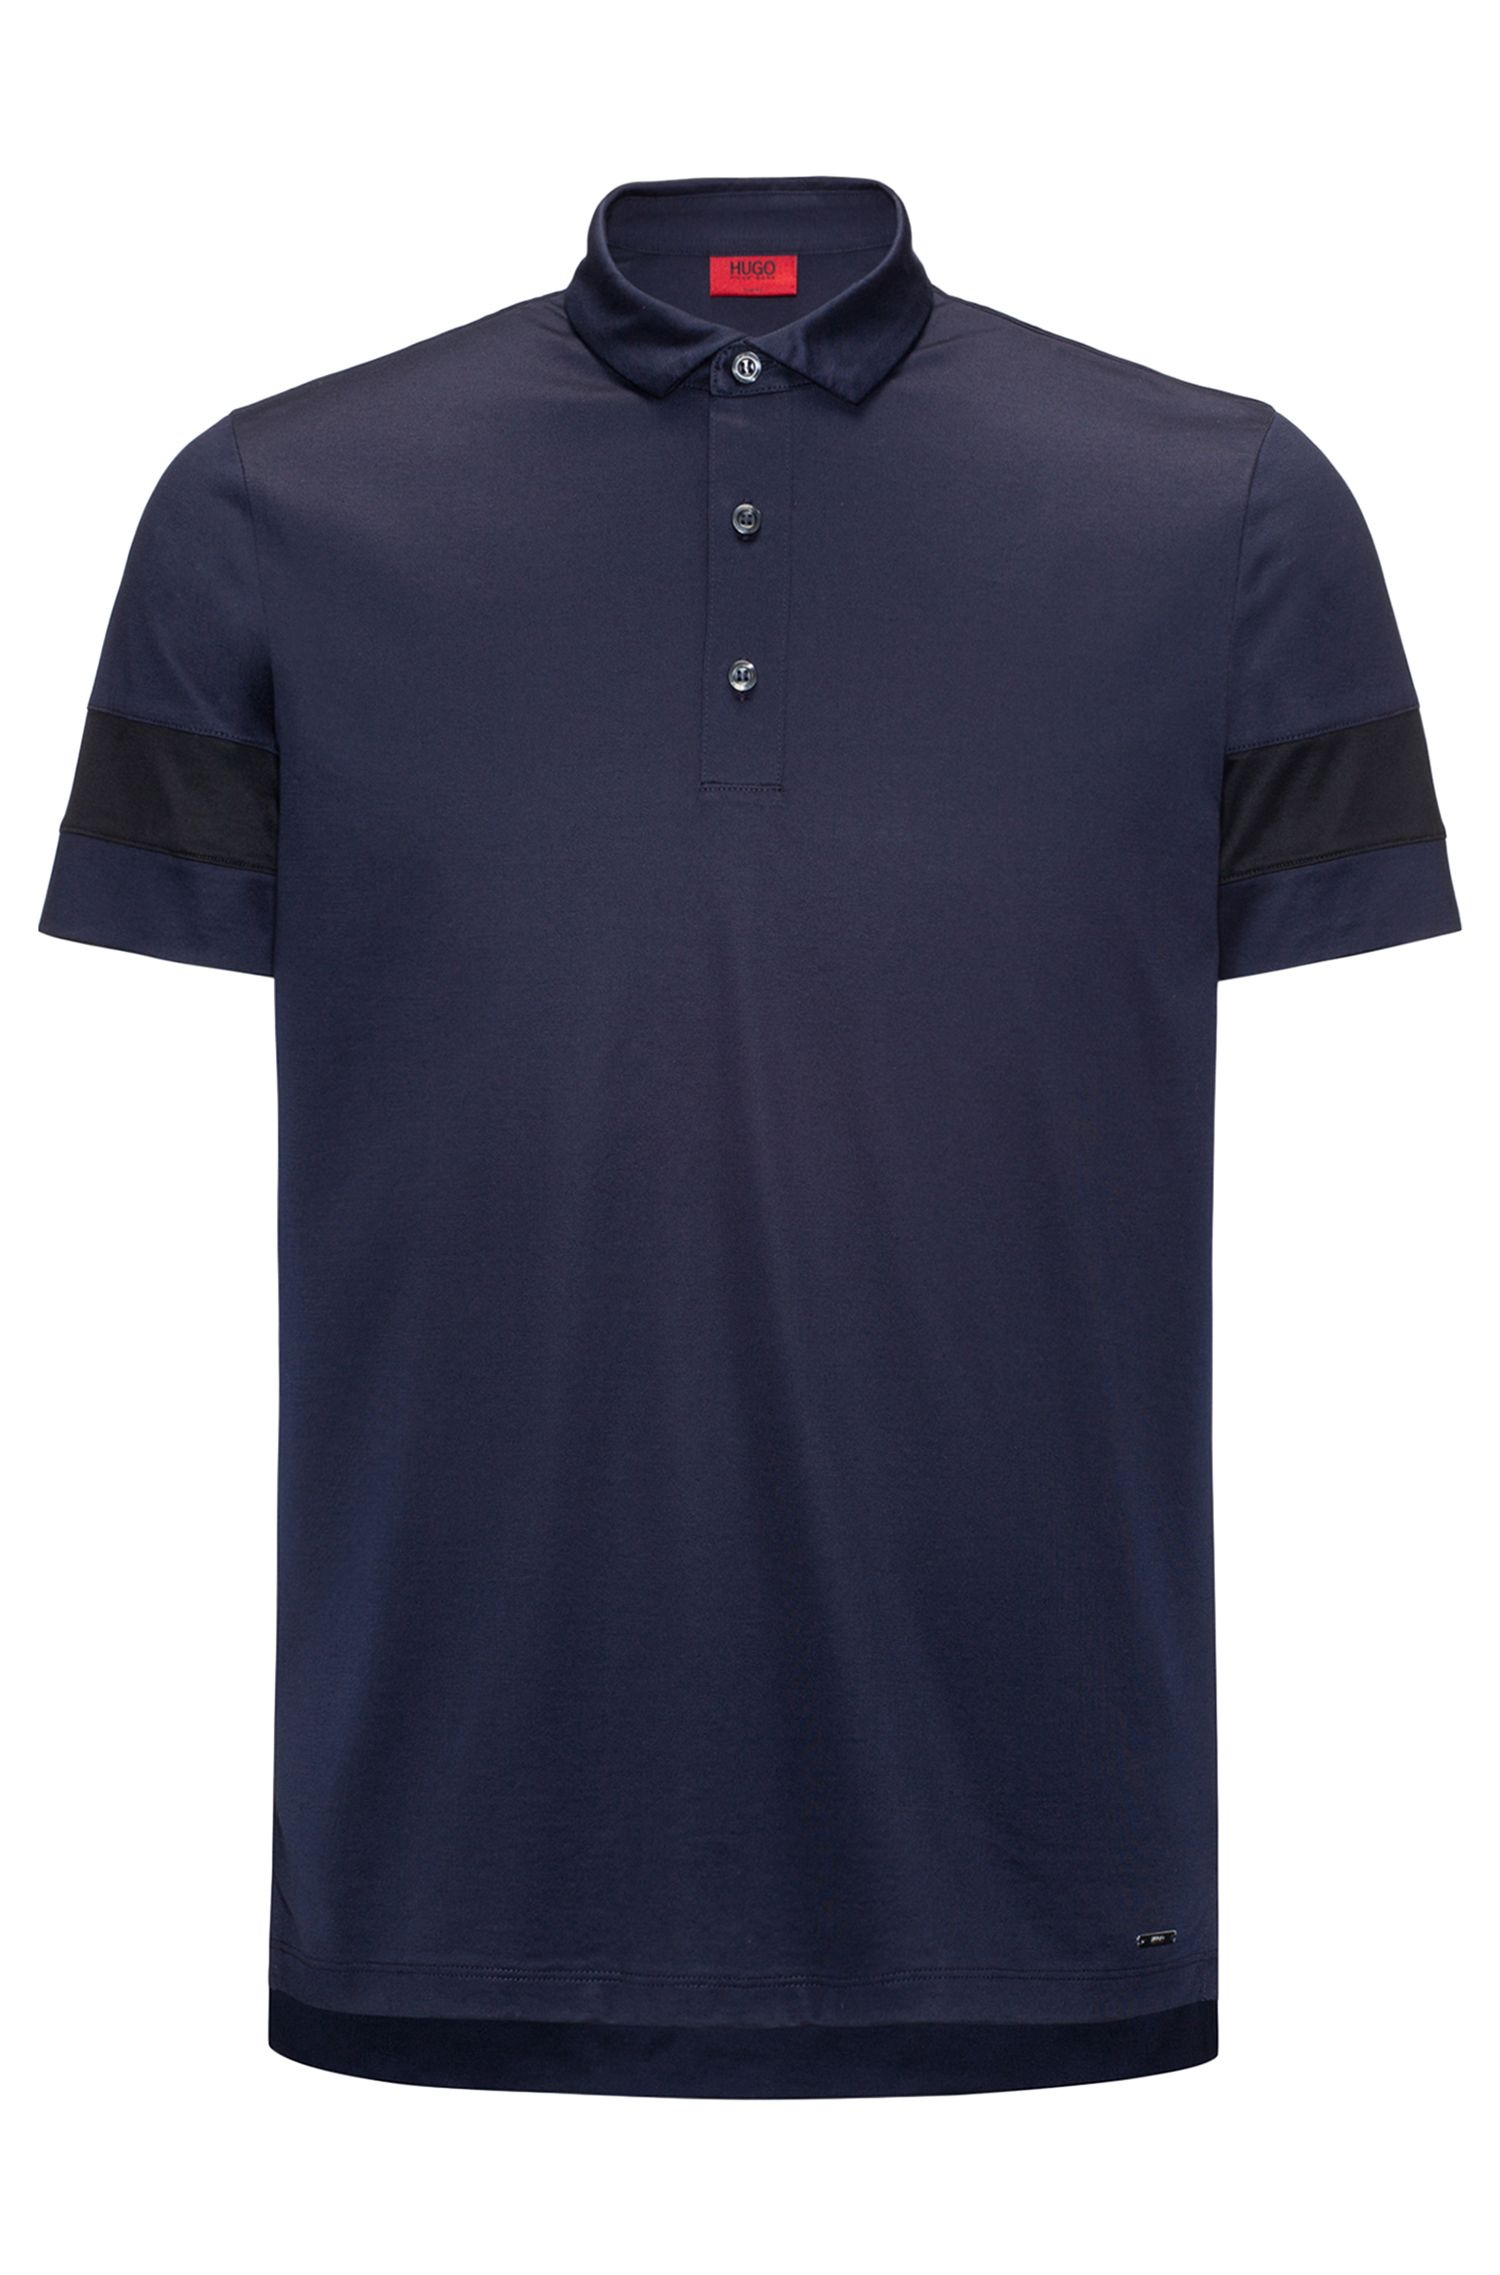 Slim-fit mercerised cotton polo shirt with contrast stripe sleeves